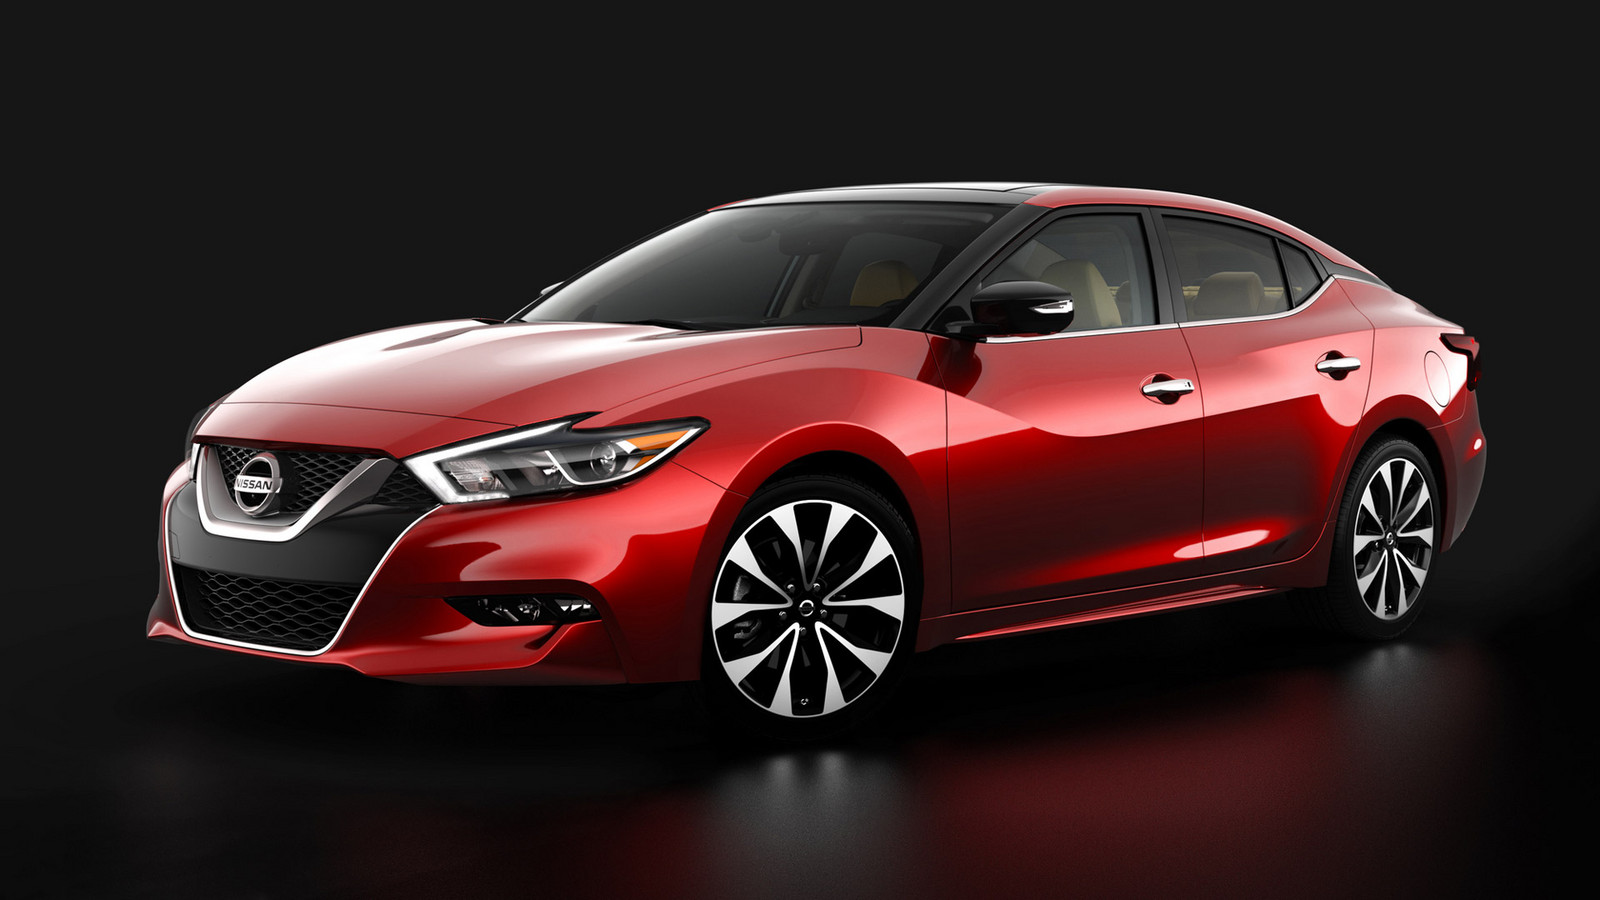 Red Cherry 2016 Nissan Maxima